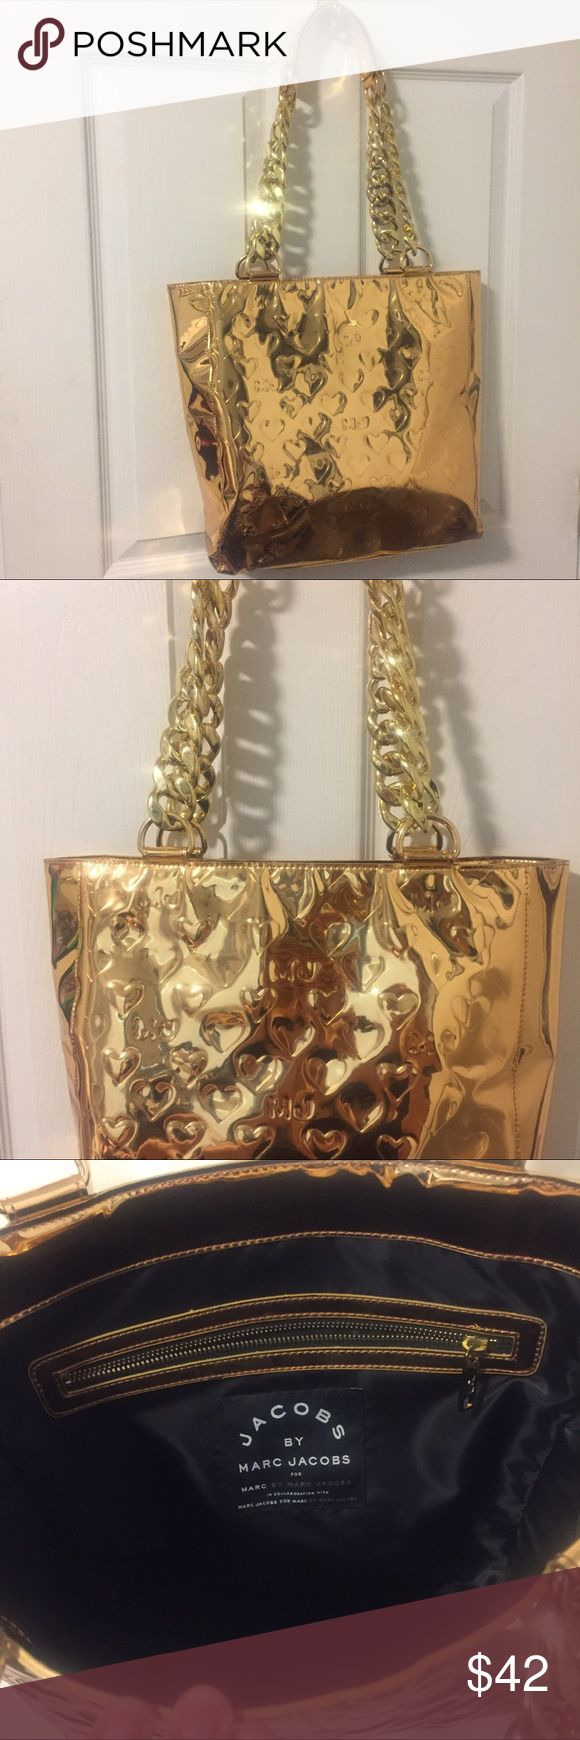 Marc Jacobs gold shoulder bag In great condition, metallic gold with logo. Gold plastic chain link detail, drop is approx. 12 inches. Black interior with zippered side pocket. Measures 12 wide by 13 high. Marc By Marc Jacobs Bags Shoulder Bags